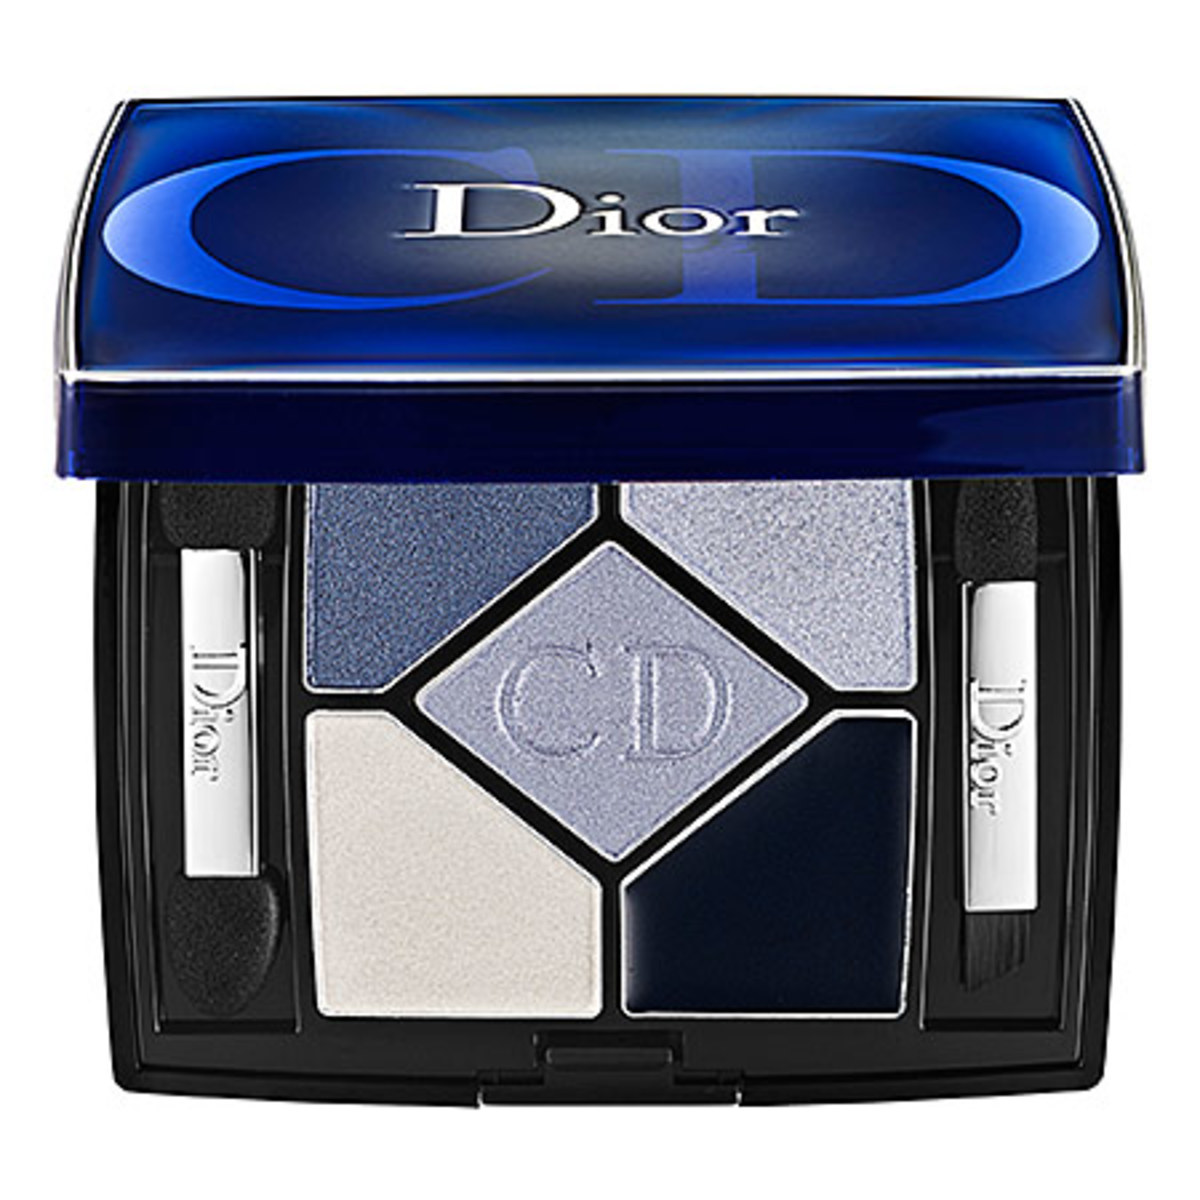 Dior 5-Colour Designer All-In-One Artistry Palette in Navy Design